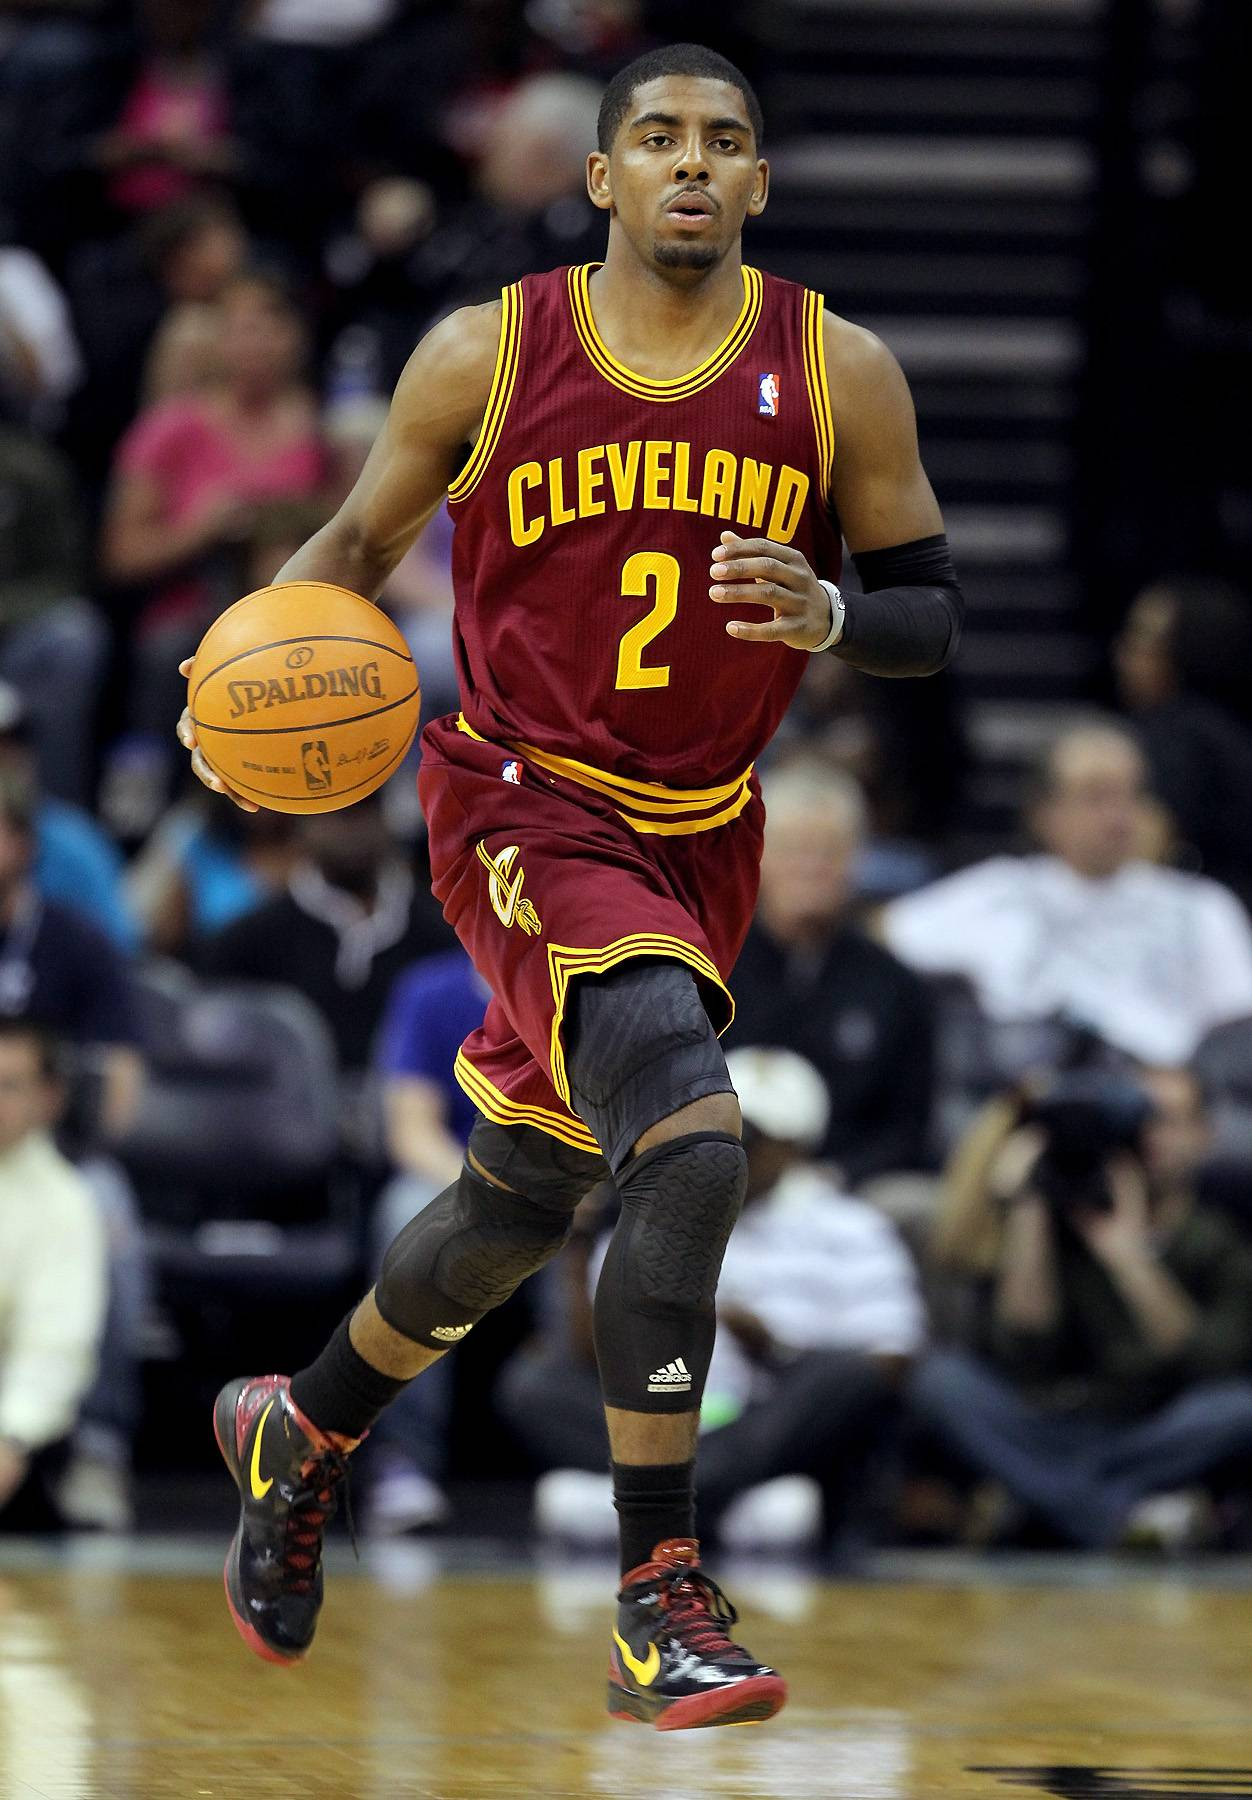 Kyrie Irving - Guard, Cleveland Cavaliers. Eastern Conference. (Photo: Andy Lyons/Getty Images)